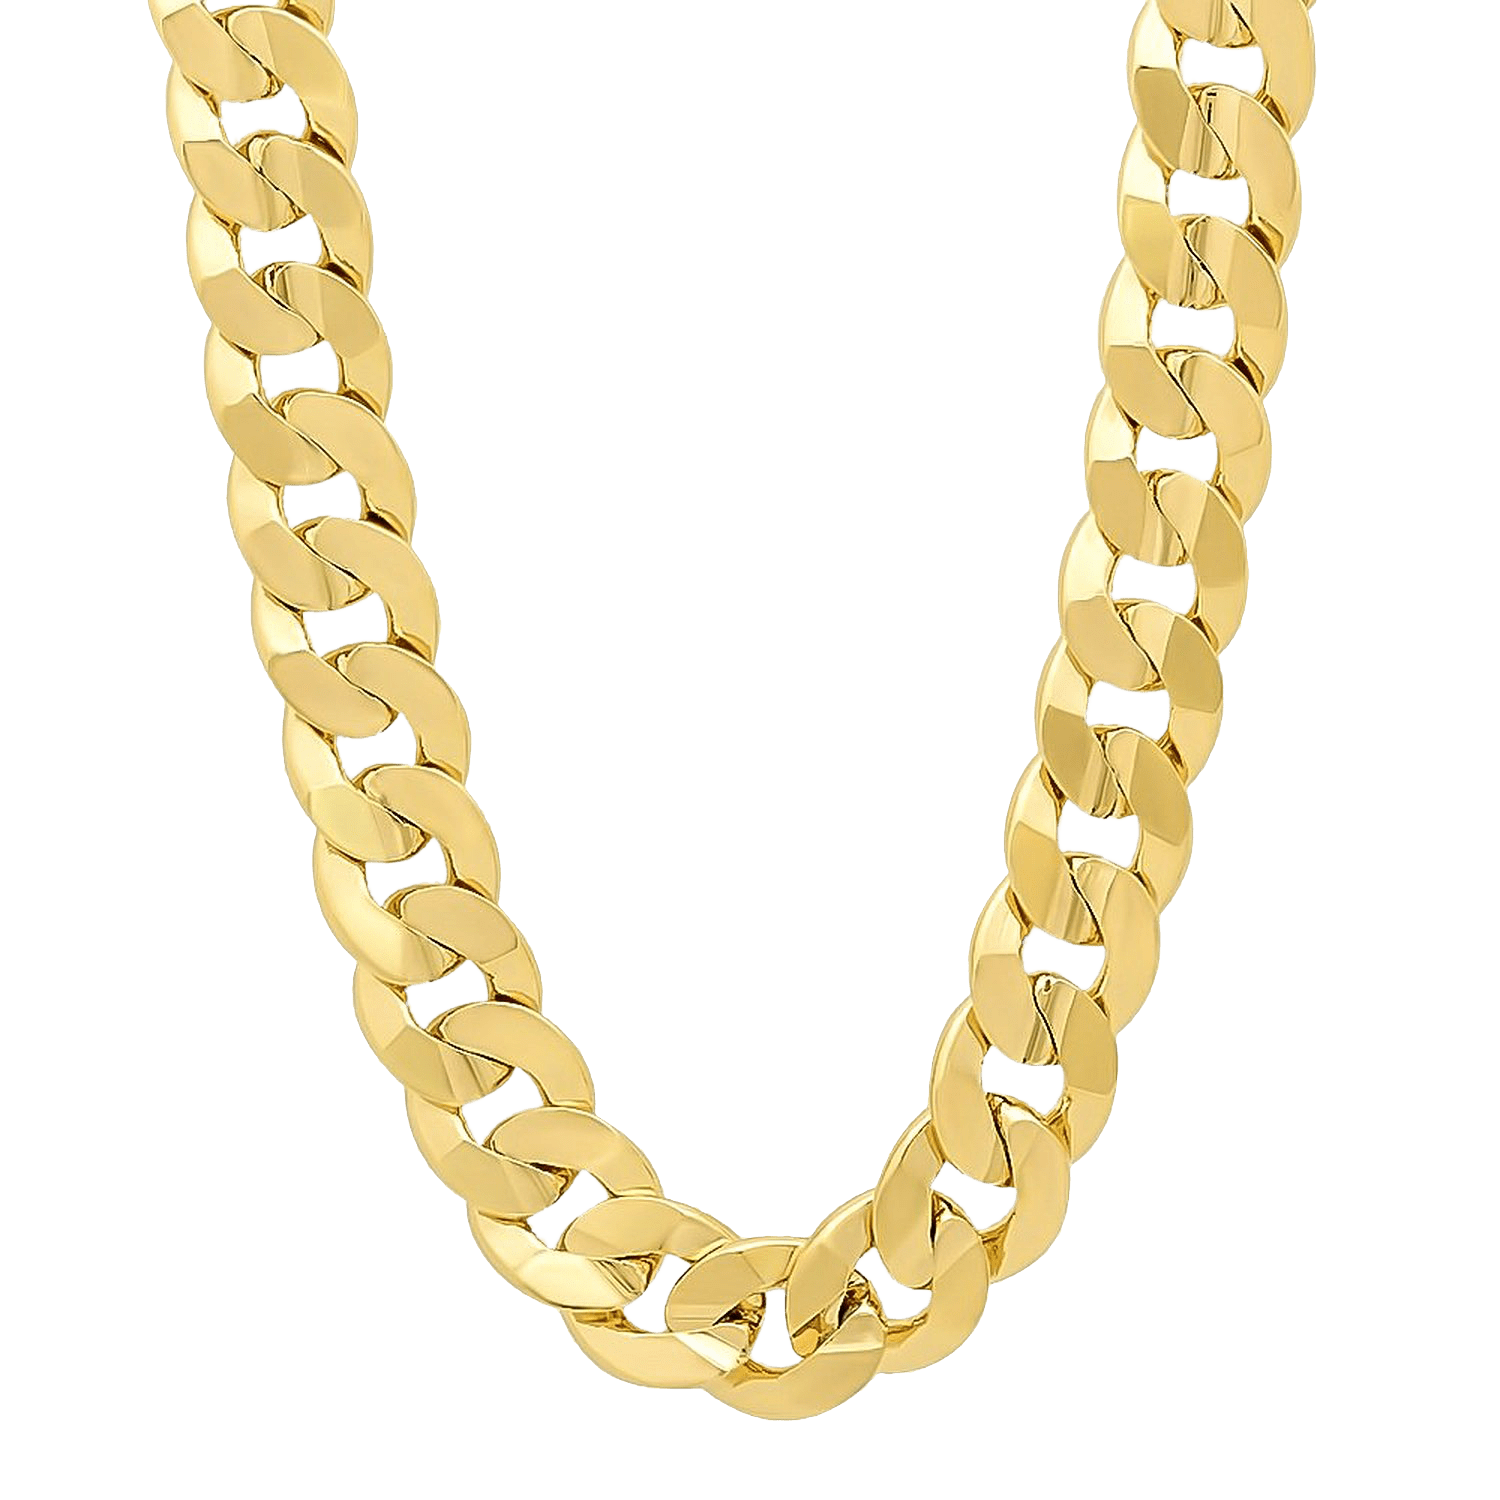 Thug Life Heavy Gold Chain - Chain PNG